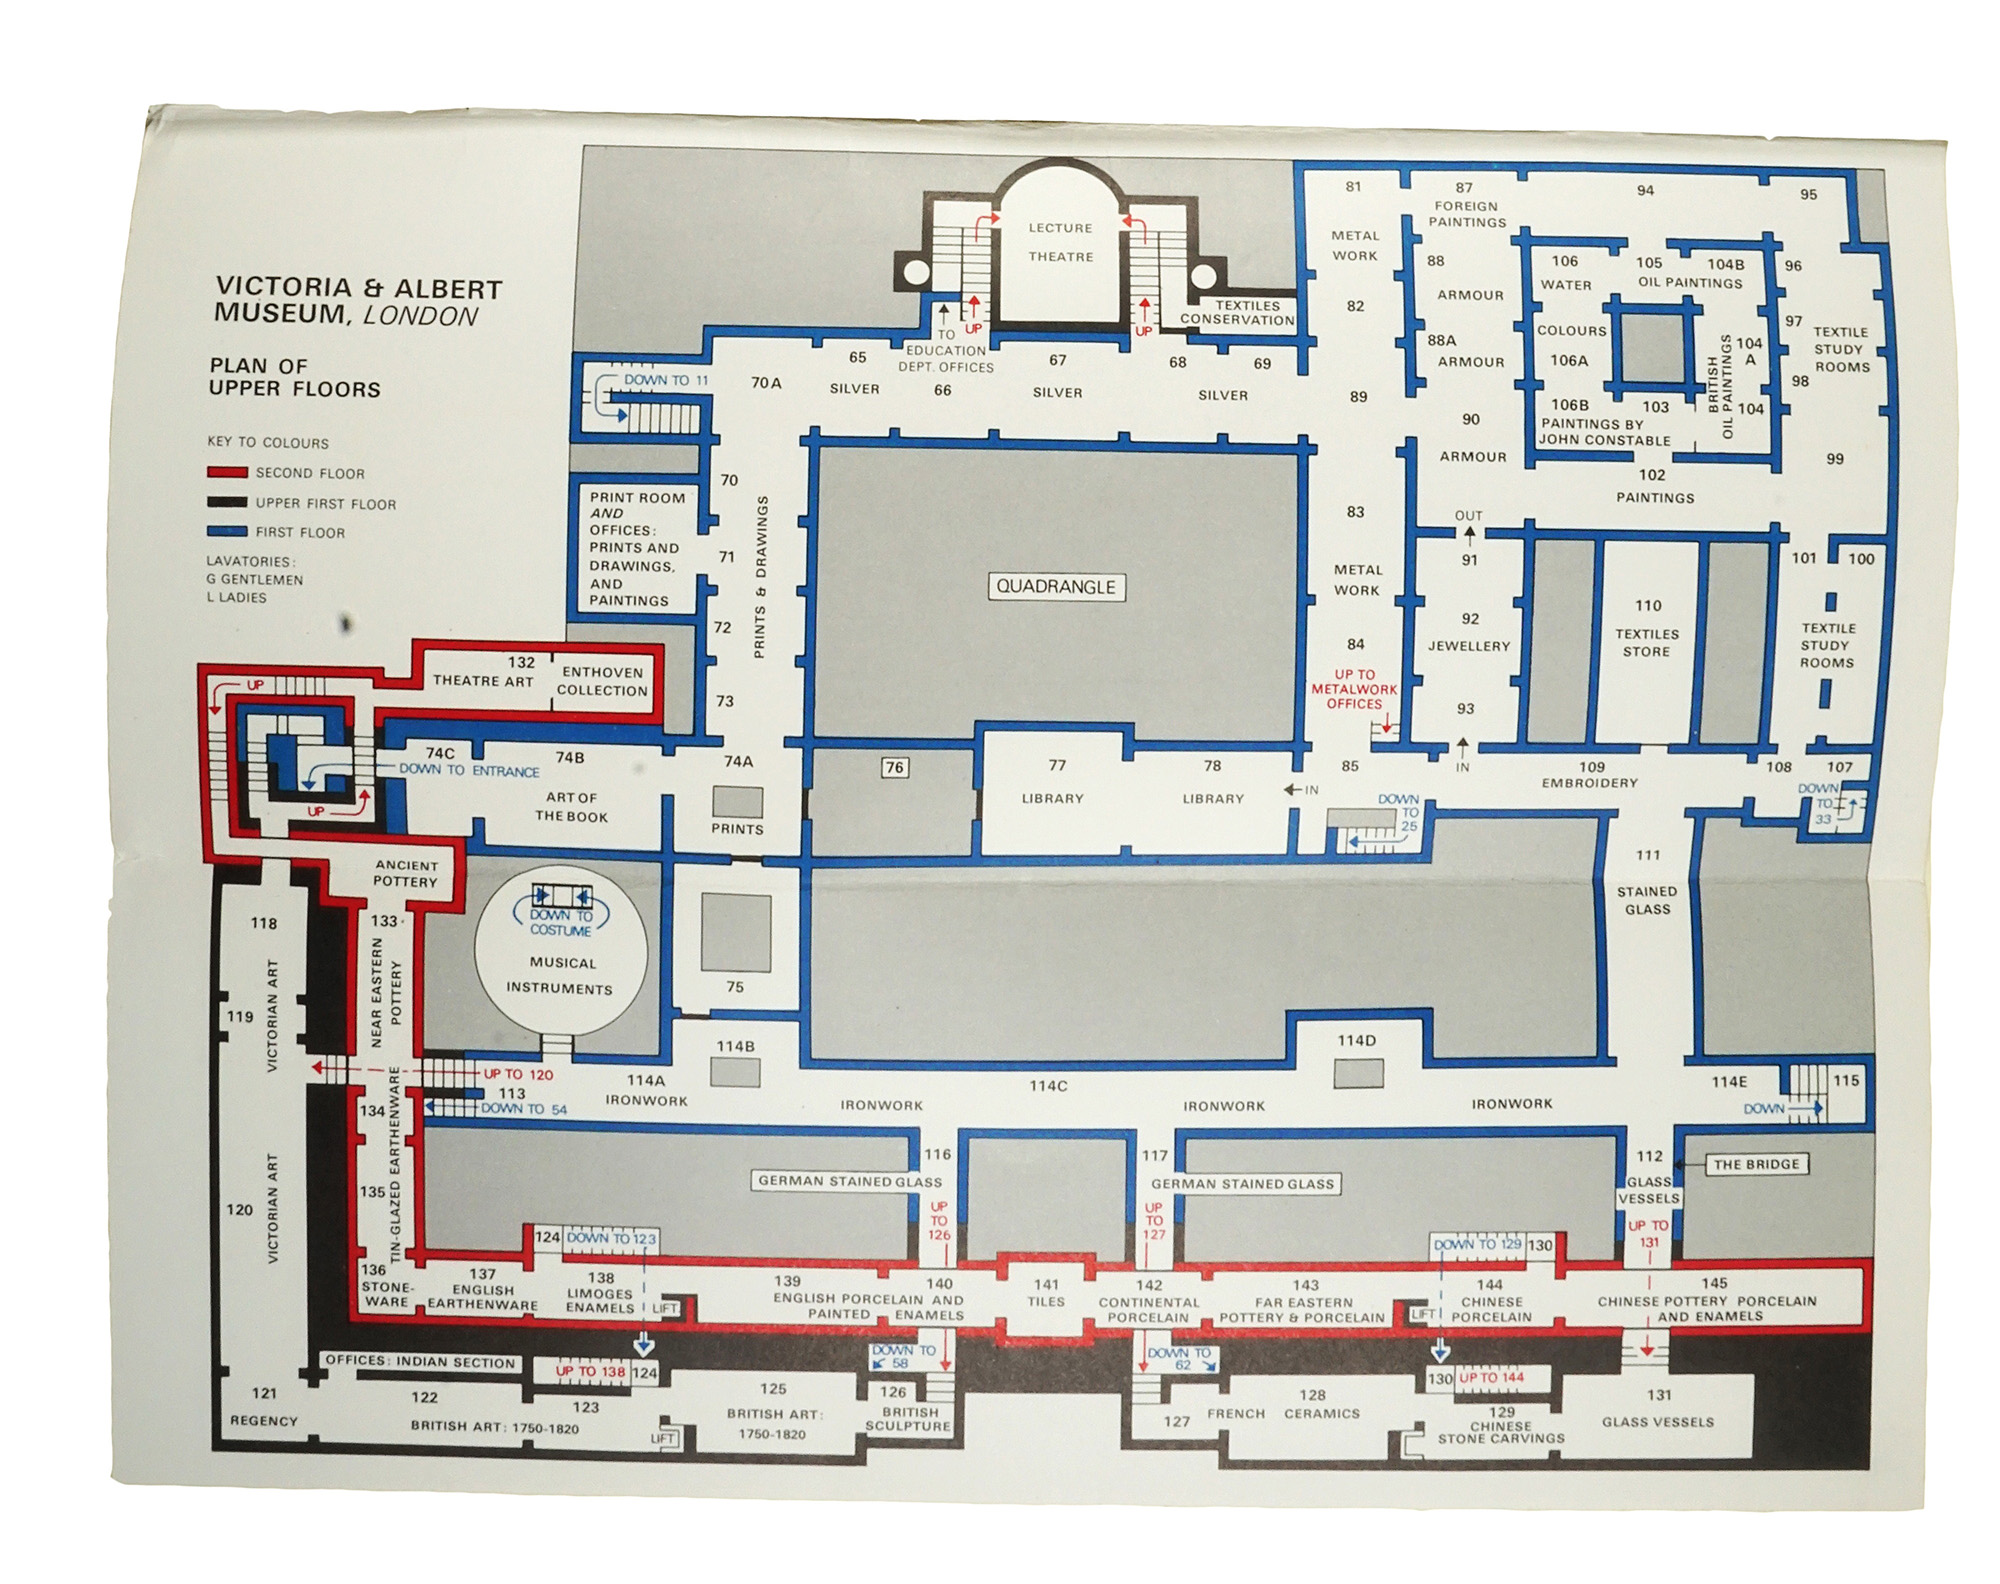 Best laid plans: mapping the V&A by Andrew McIlwraith | Victoria and ...